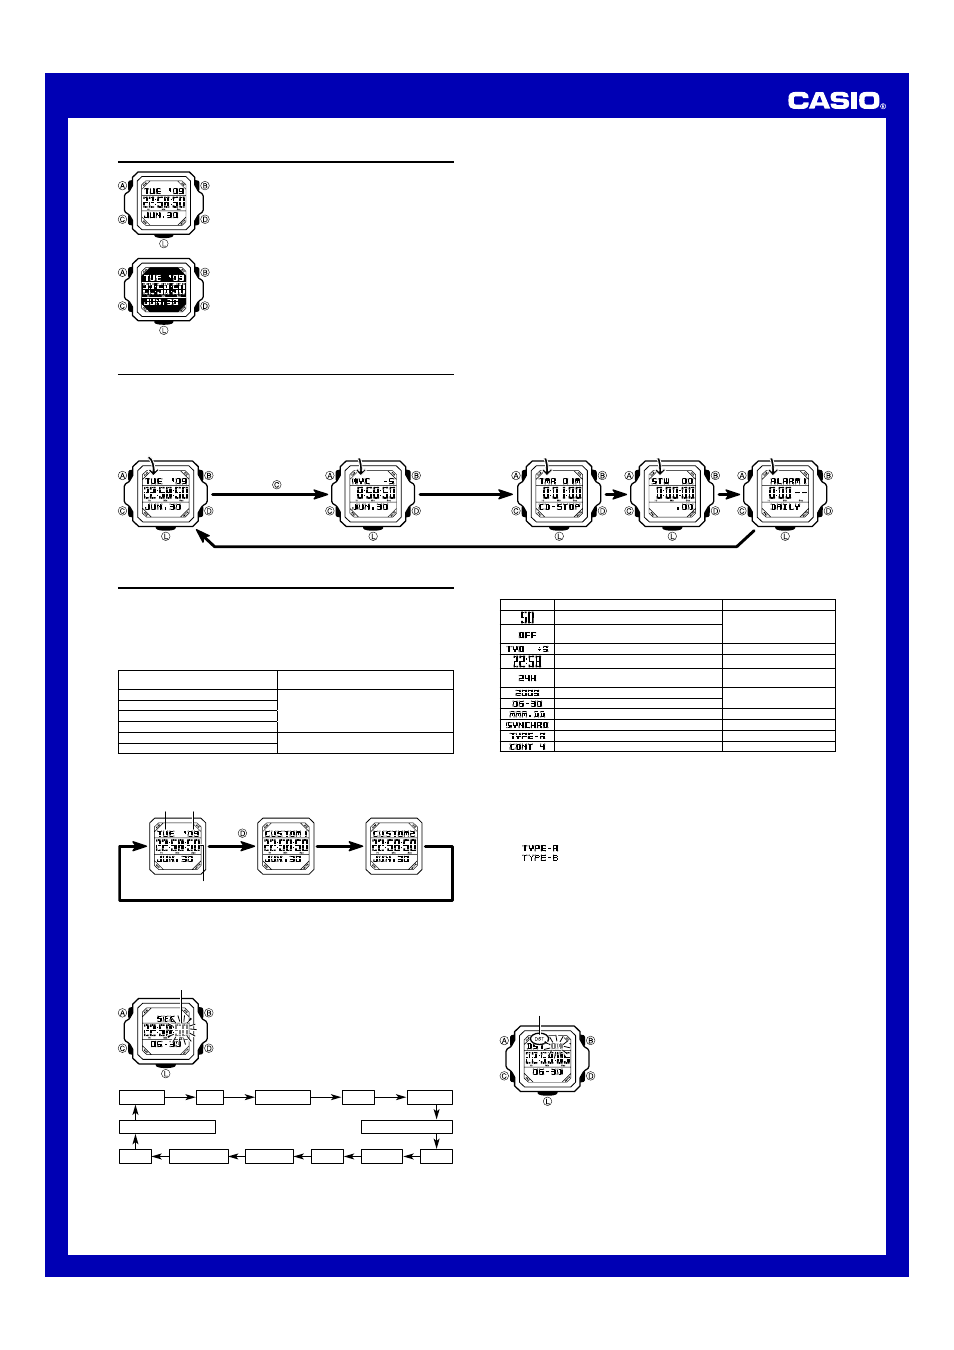 G-Shock G-7800-1 User Manual | 5 pages | Also for: 3163, G-7800B-1